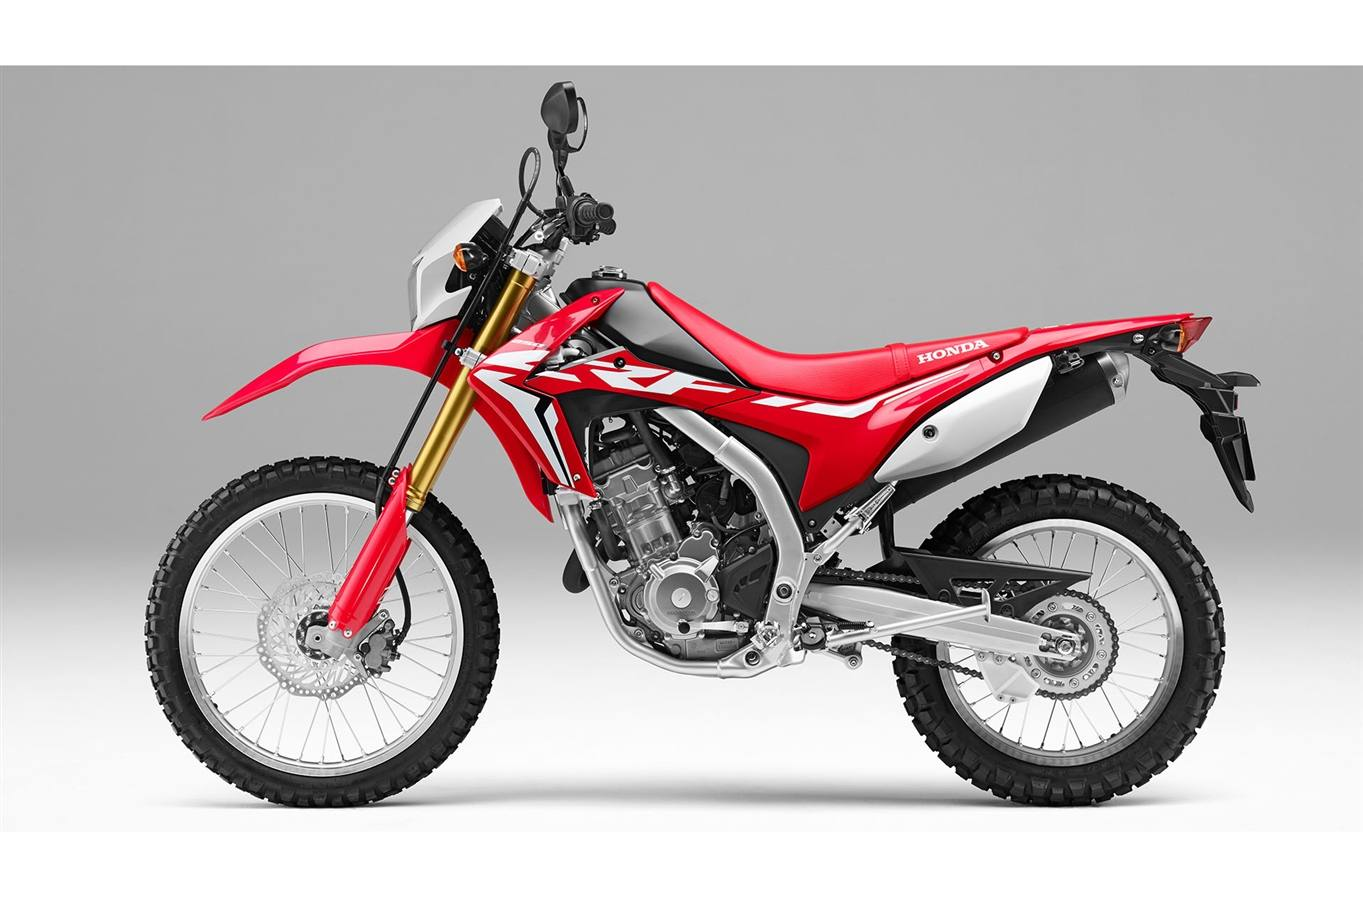 2019 Honda Crf250l For Sale In Waterloo On Kw Honda Waterloo On